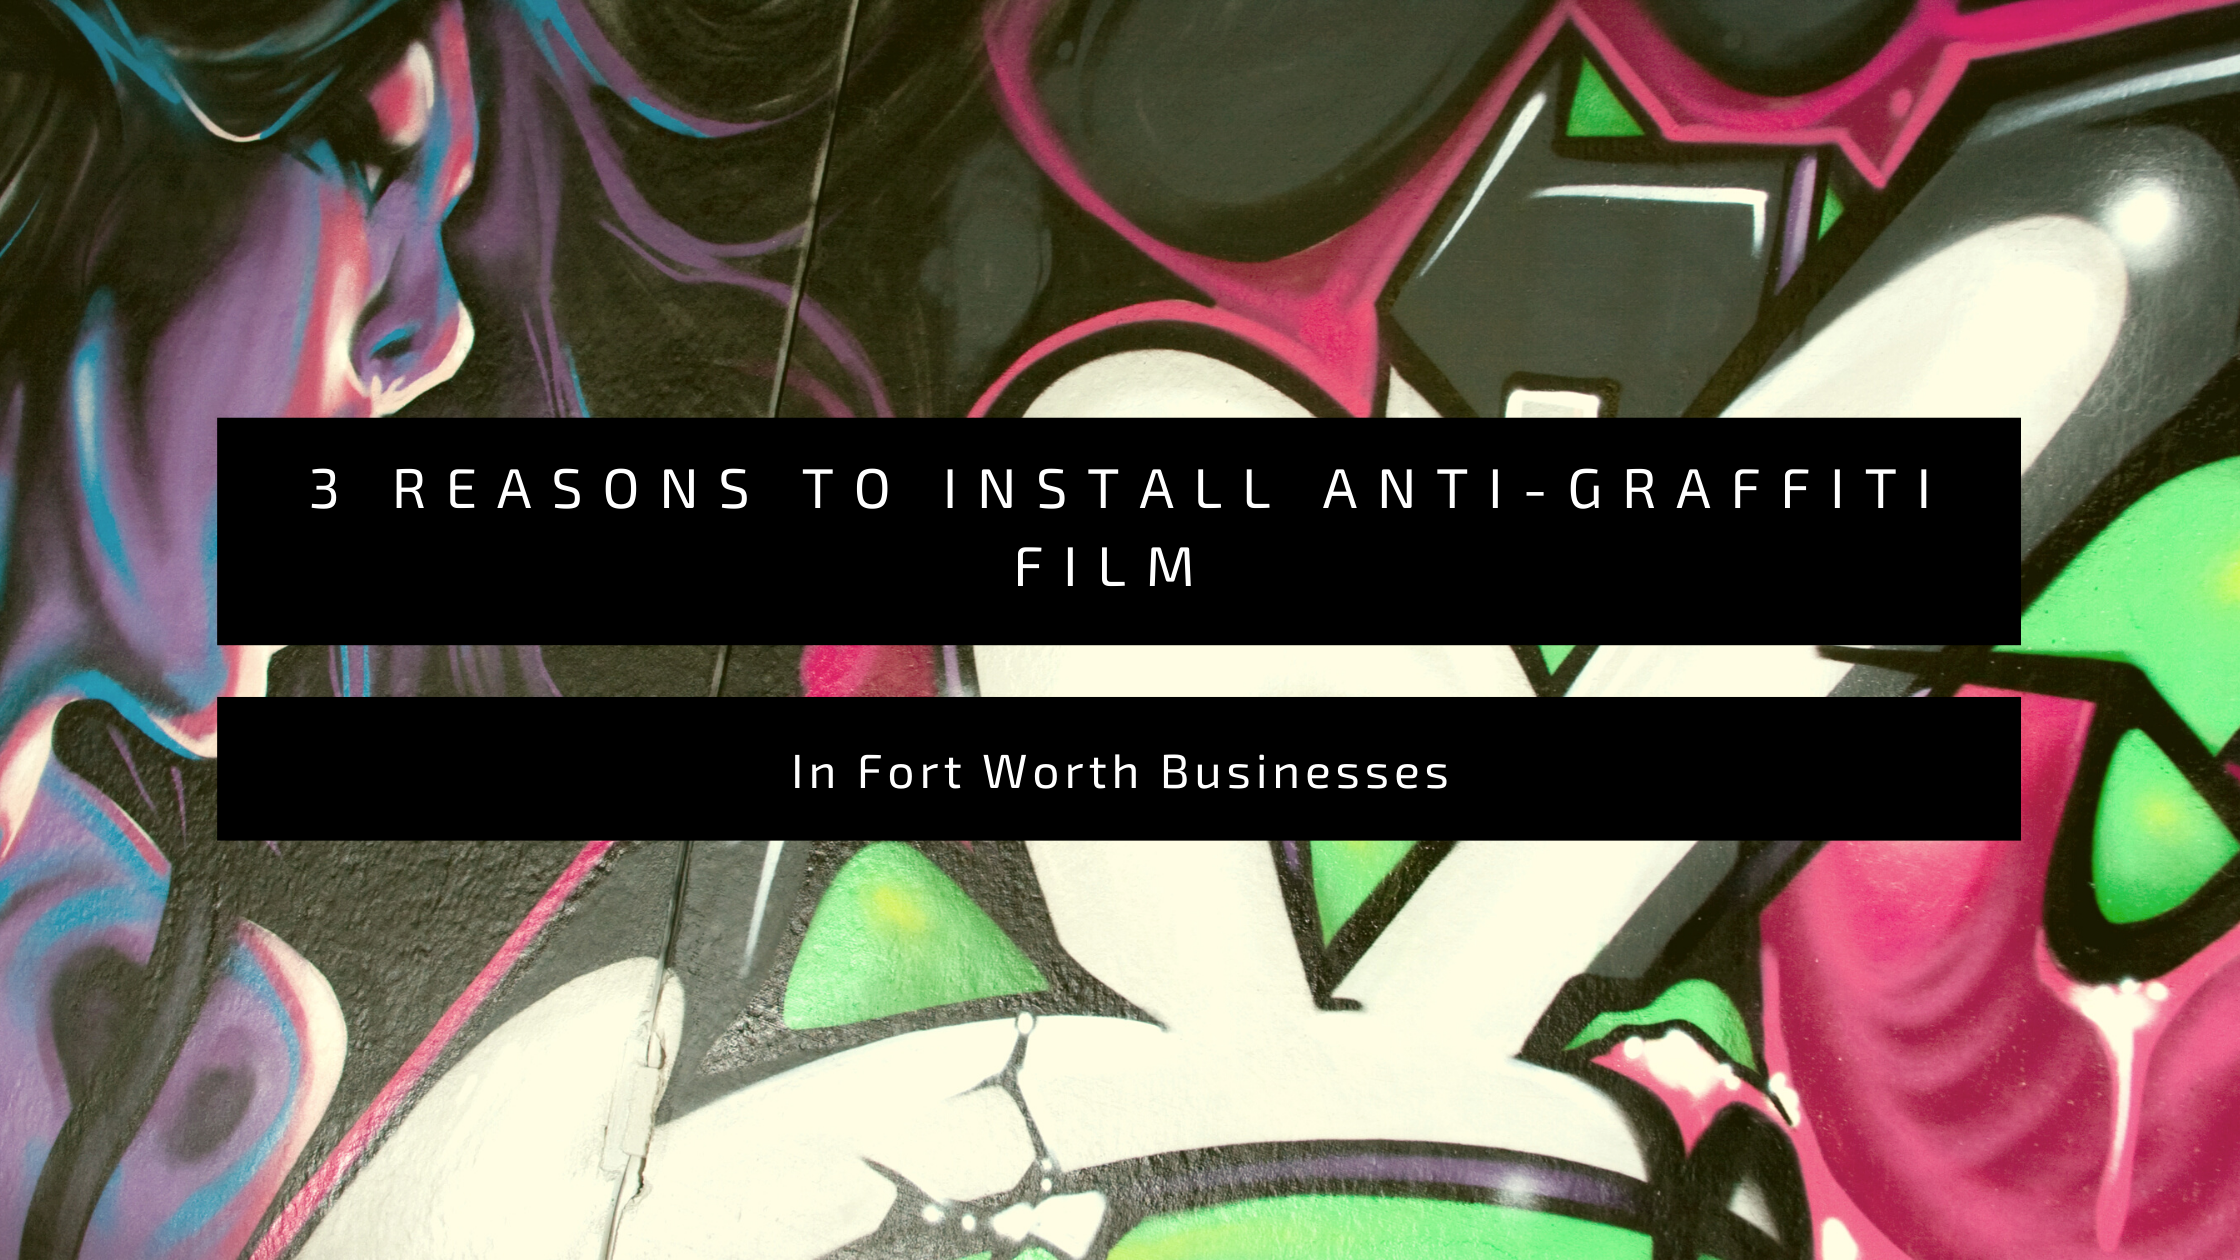 3 Reasons to Install Anti-Graffiti Film In Fort Worth Businesses